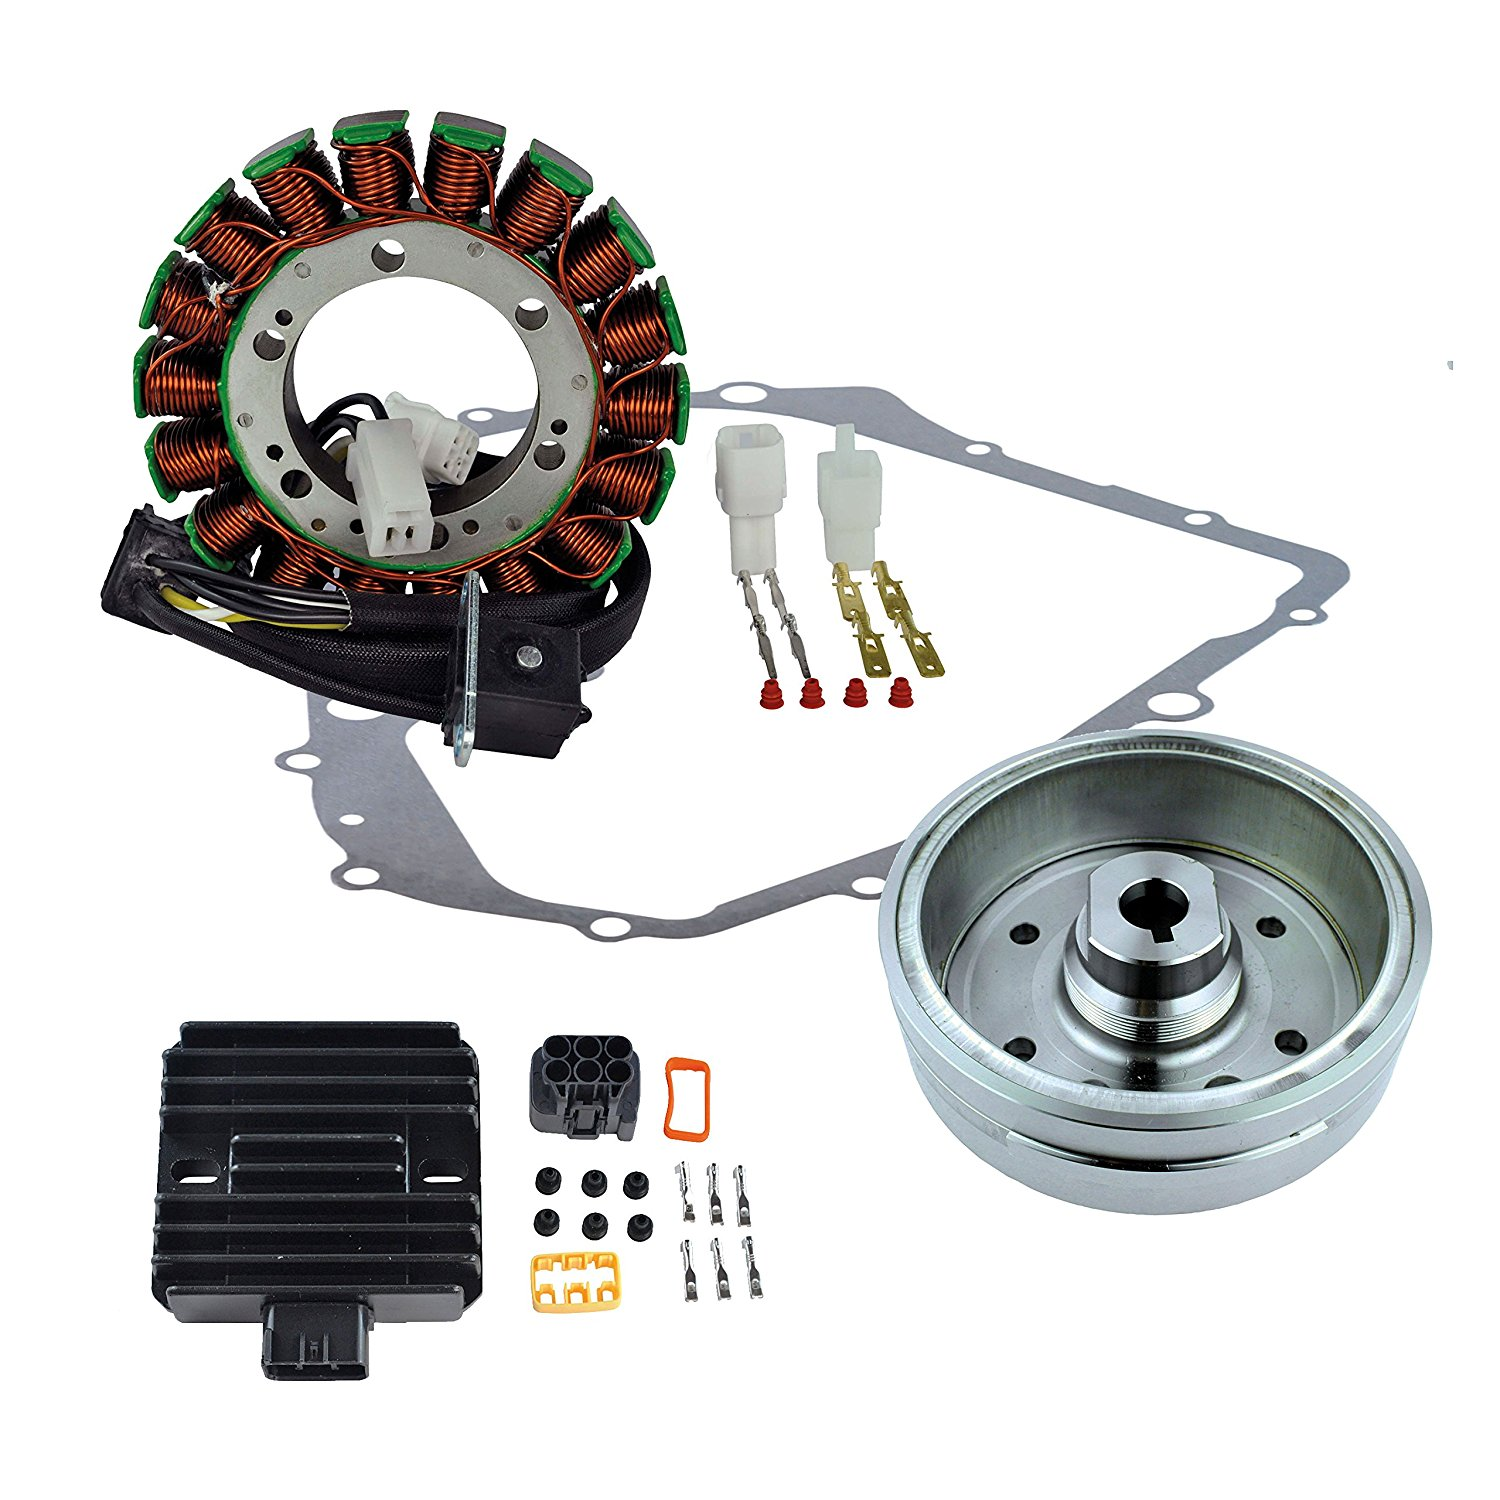 Kit Stator + Improved Magneto Flywheel + Regulator Rectifier + Crankcase Cover Gasket For Suzuki LTA 400 Eiger 2002 2003 2004 2005 2006 2007